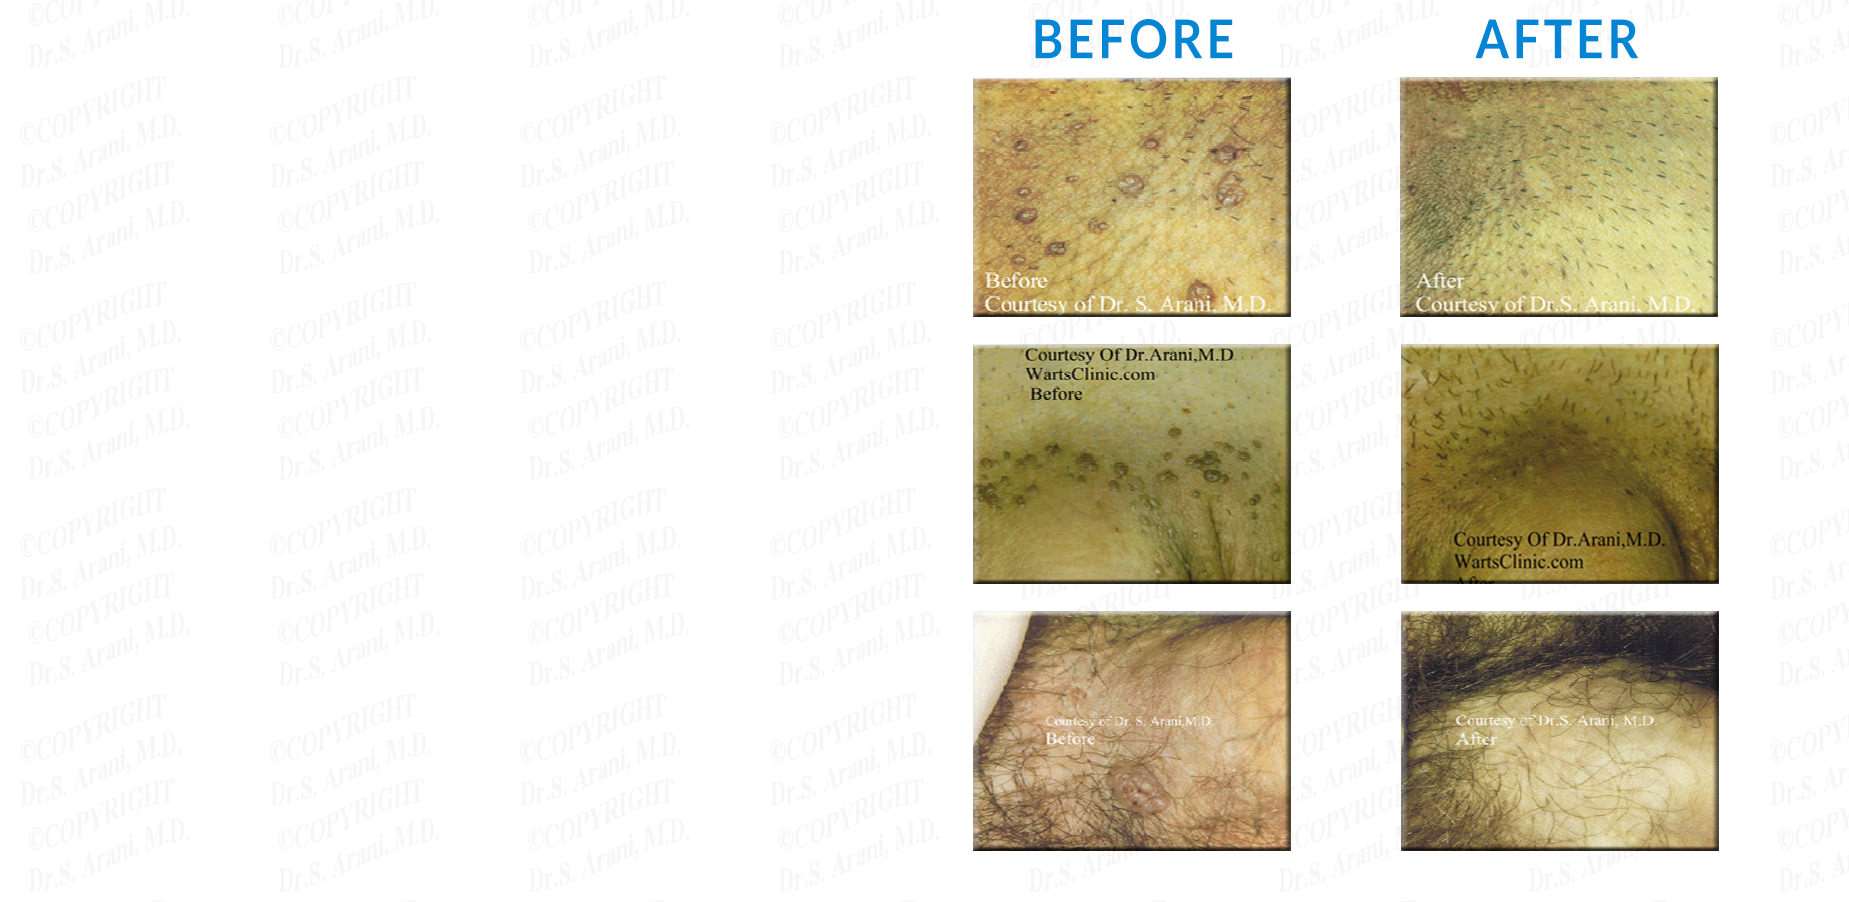 Before and After Photos - Genital Warts Treatment